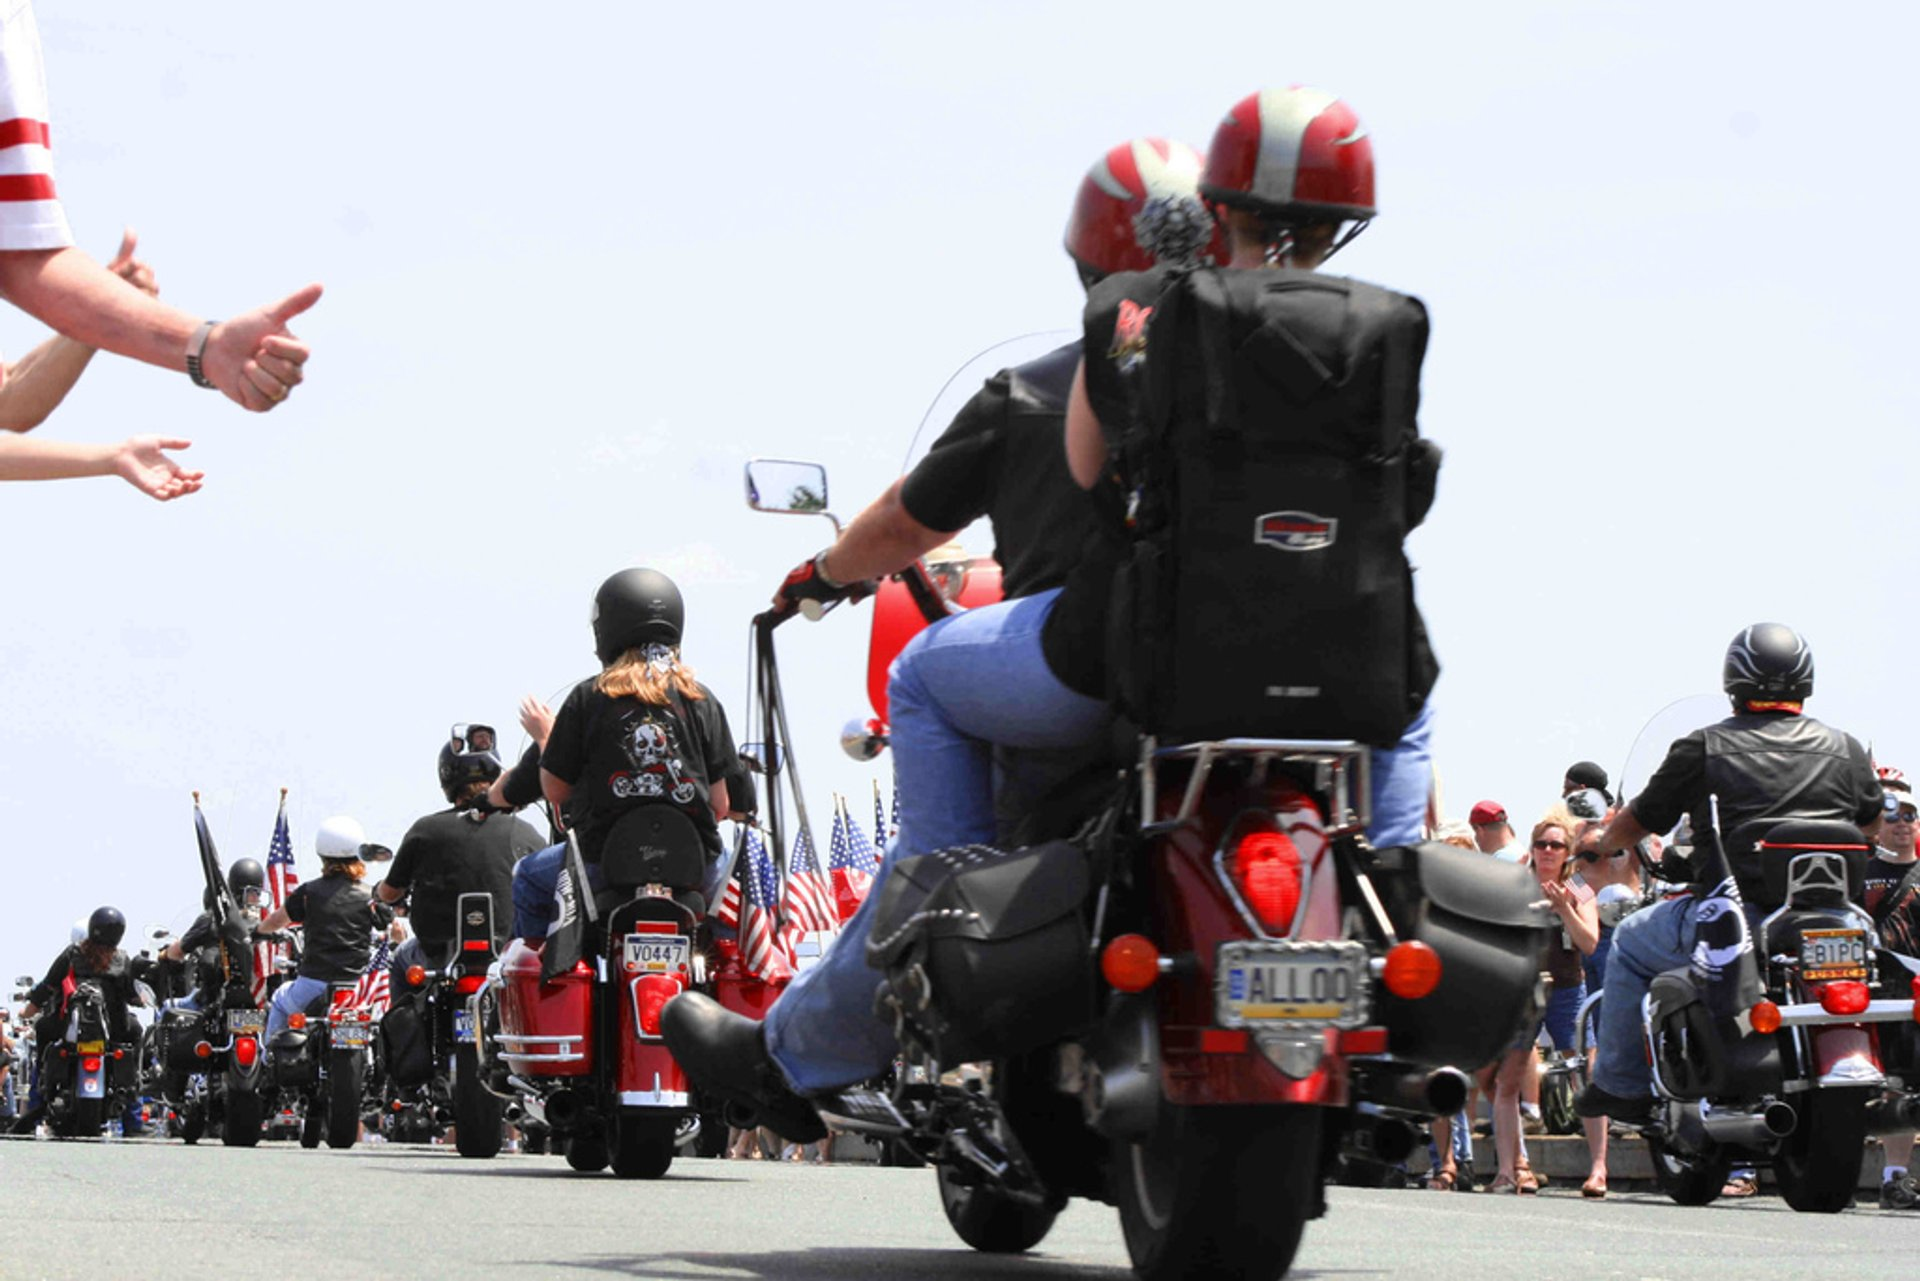 Best time to see Rolling Thunder Run in Washington, D.C. 2020